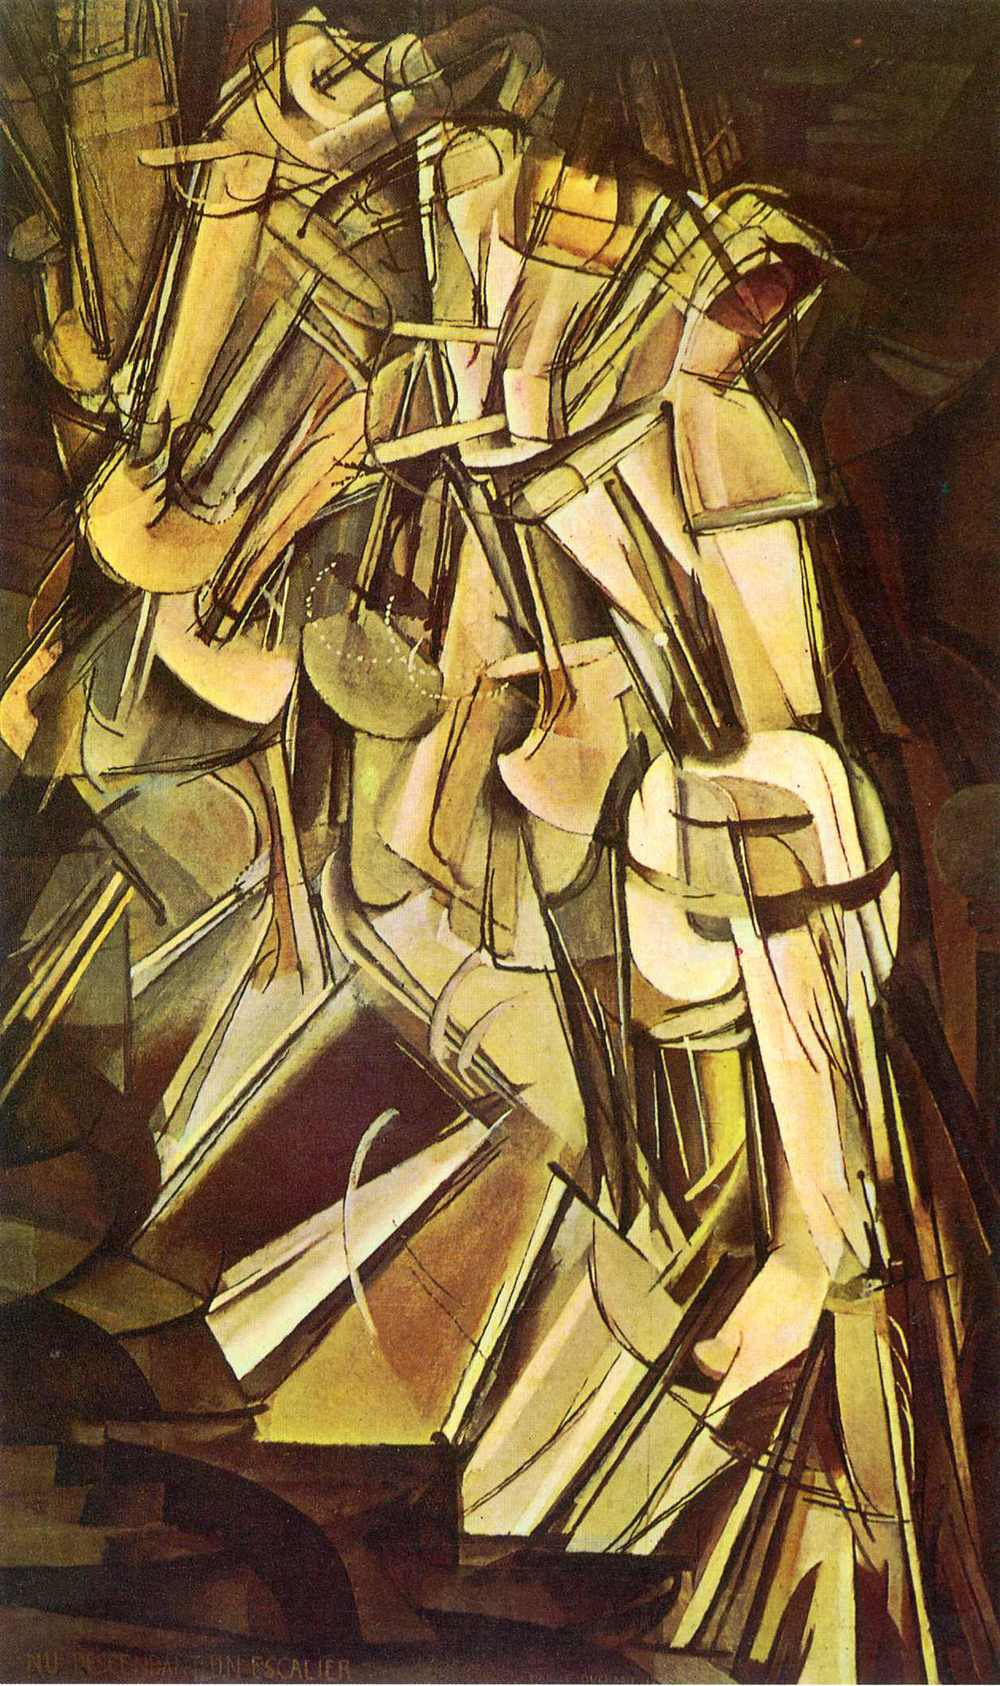 Marcel Duchamp, Nude Descending a Staircase, No.2. 1912.